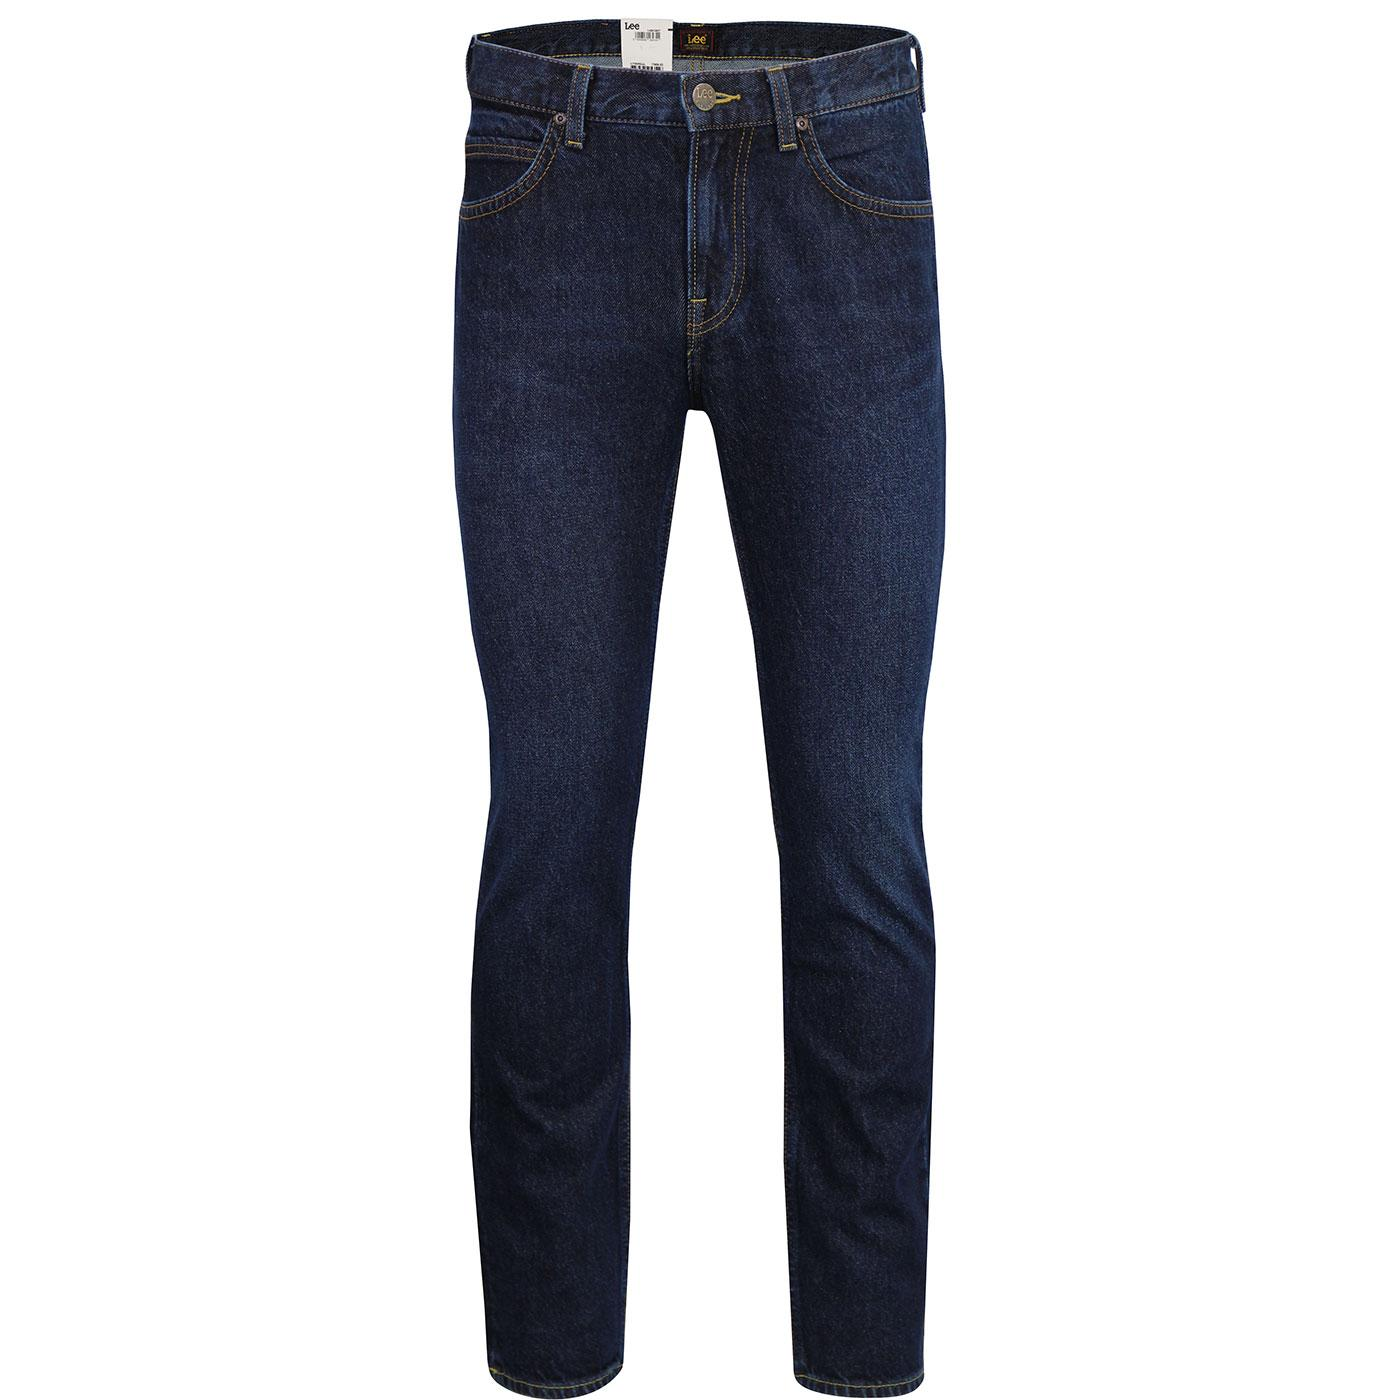 Rider LEE Slim Leg Retro Dark Buck Denim Jeans